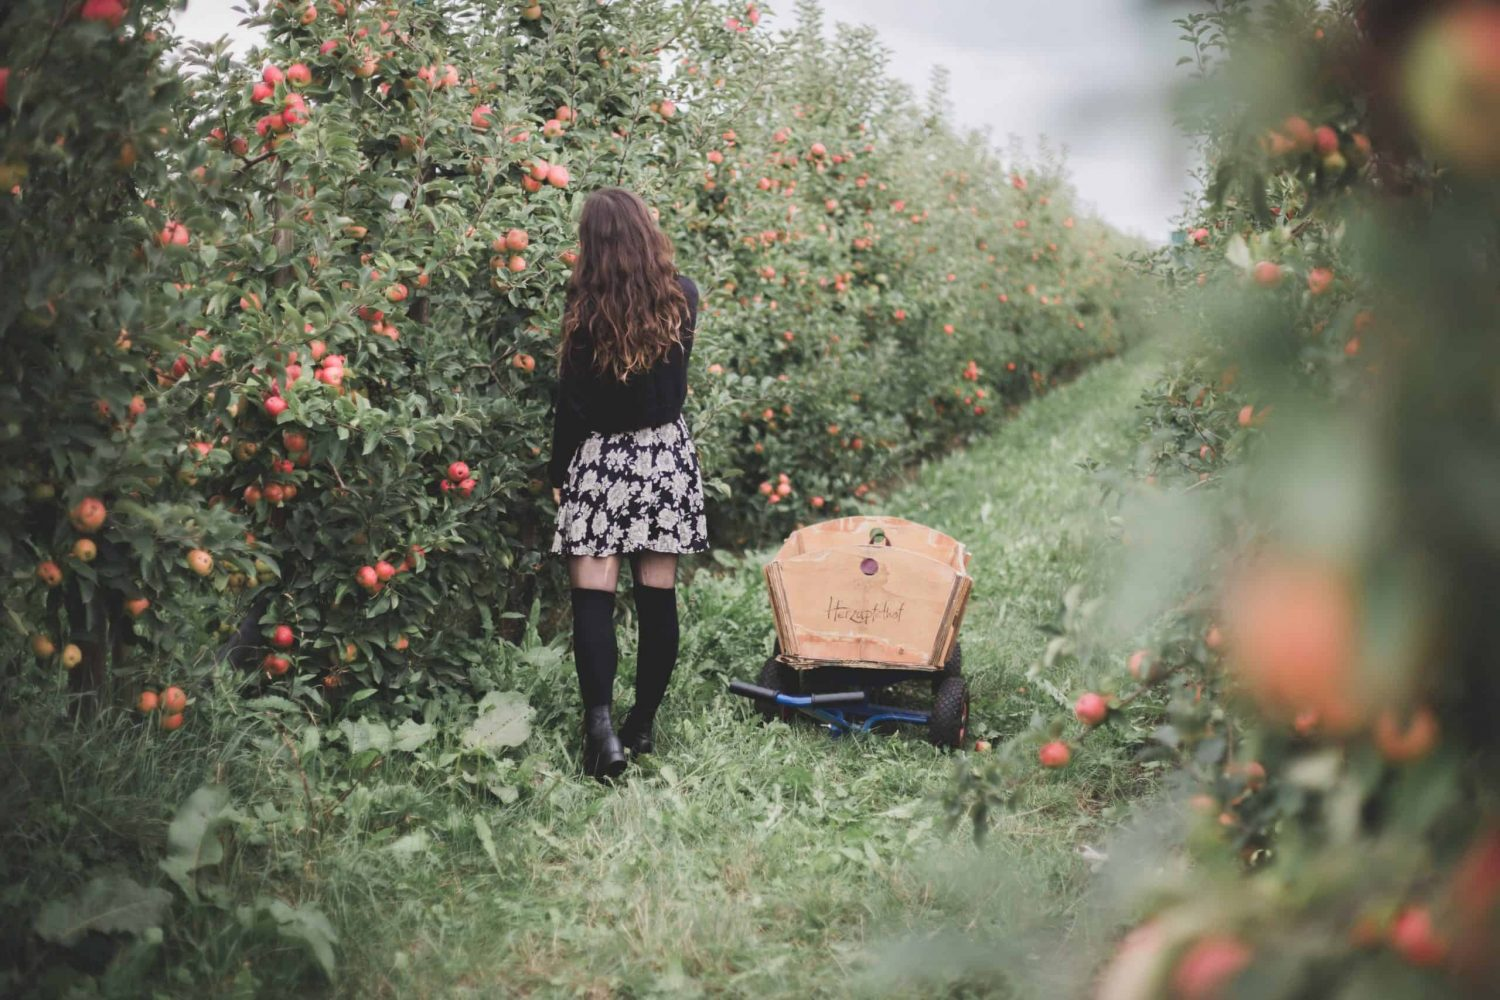 Picking apples at Herzapfelhof Lühs in Altes Land in Germany. Altes Land is a really cool destination for 2020!